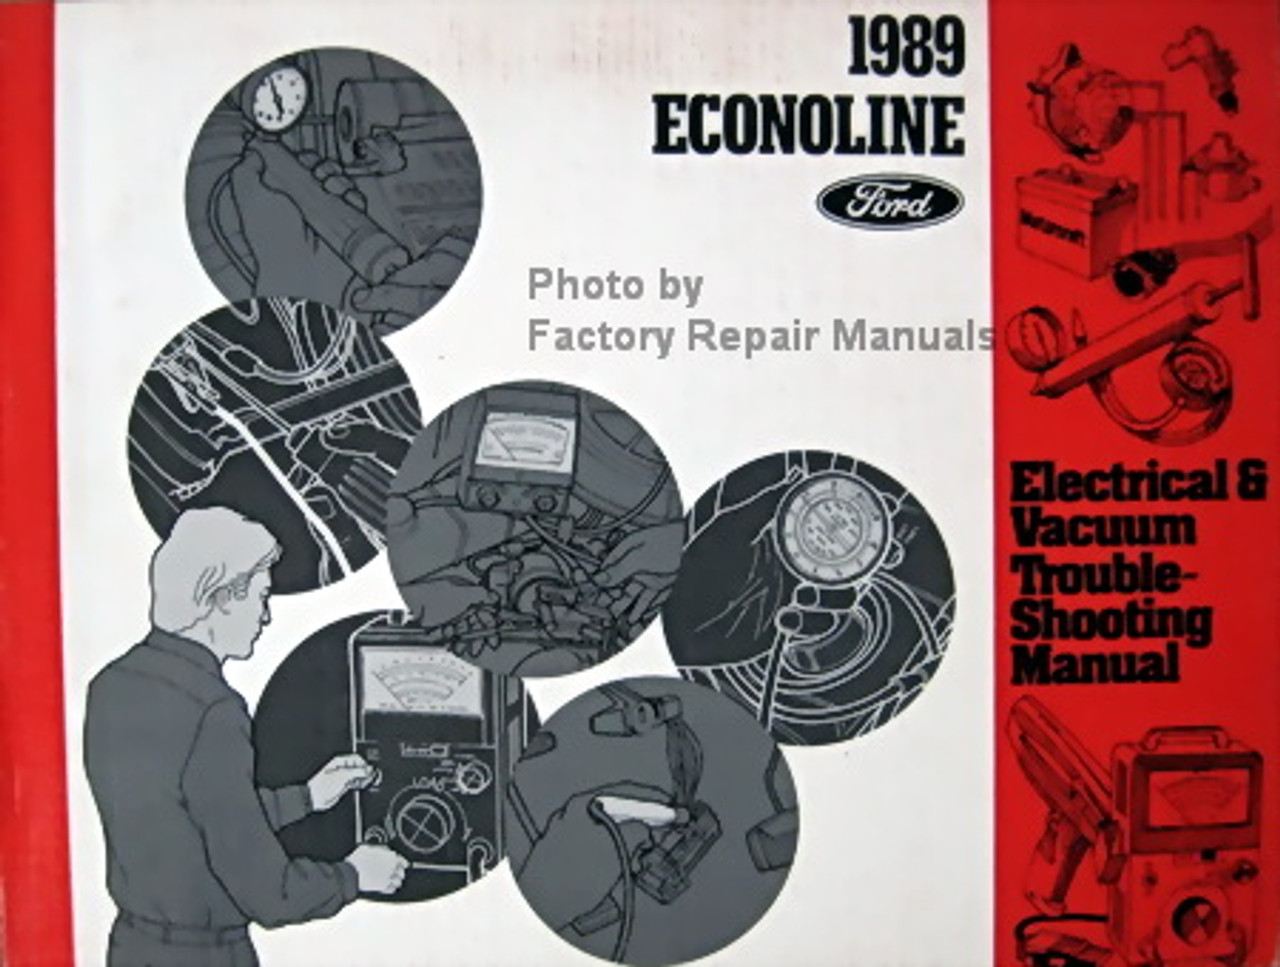 1989 Ford Econoline Electrical  U0026 Vacuum Troubleshooting Manual E150 E250 E350